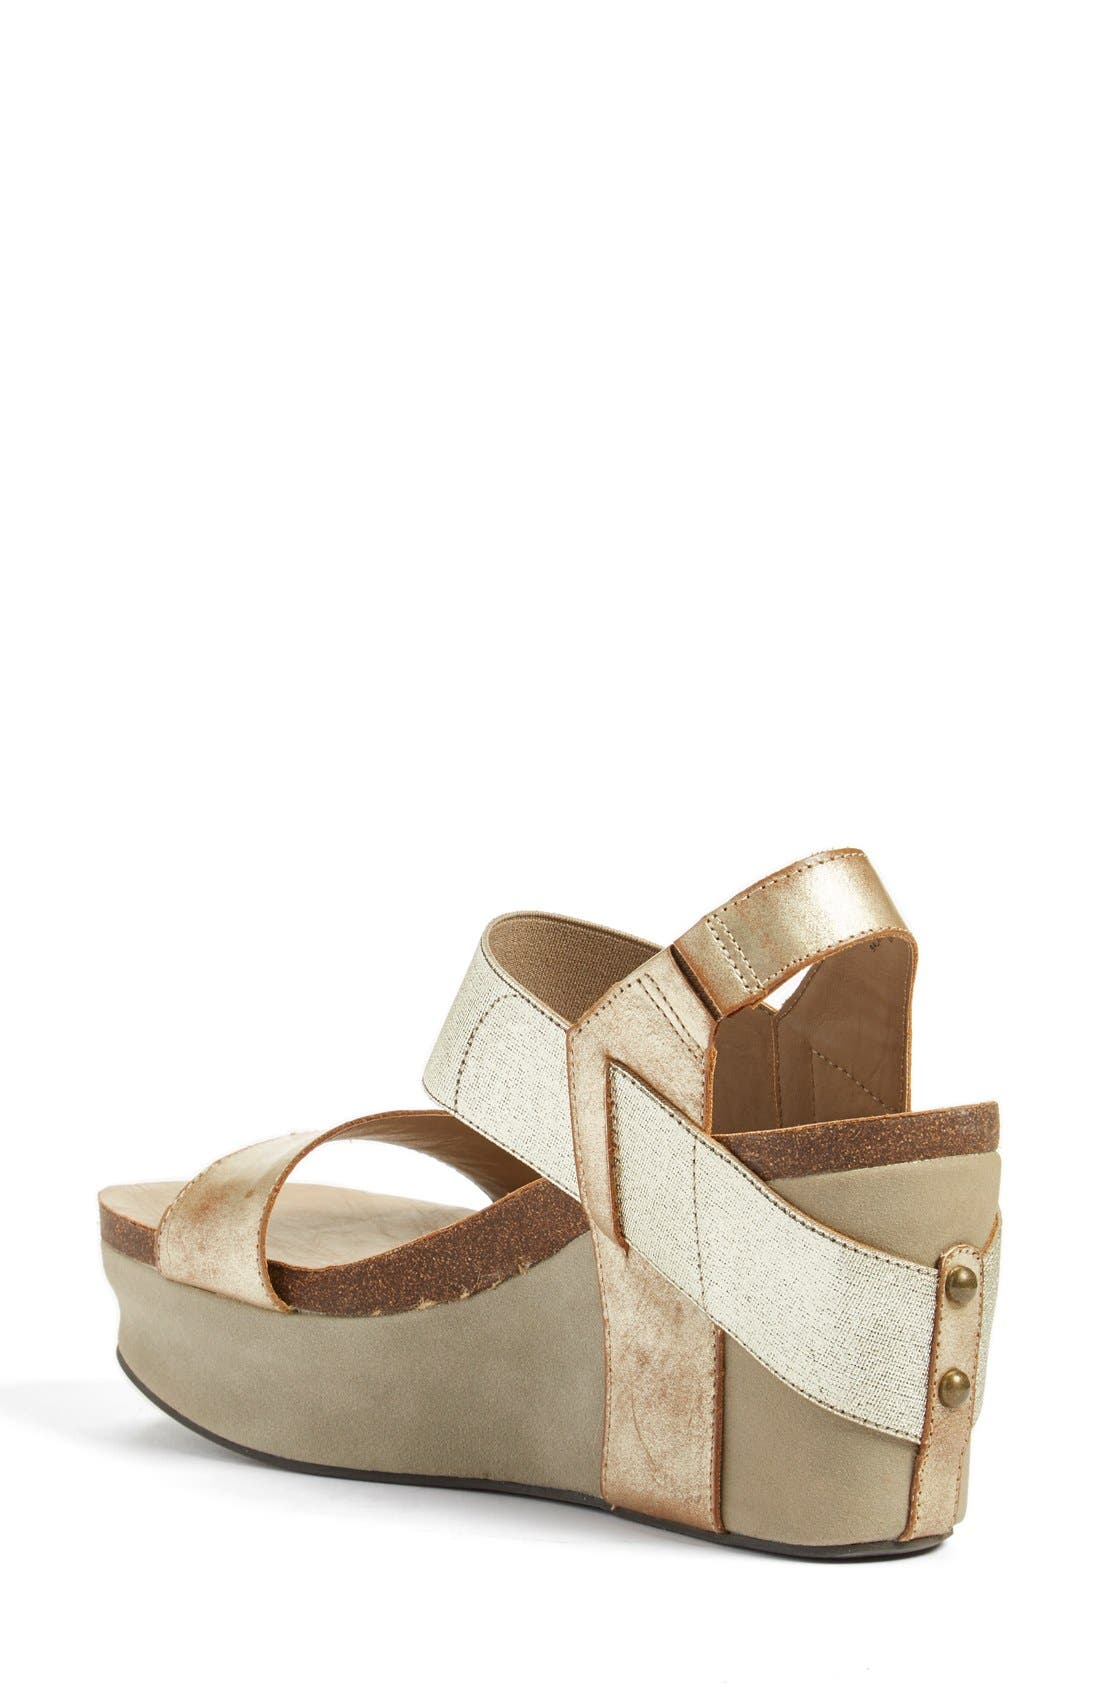 'Bushnell' Wedge Sandal,                             Alternate thumbnail 26, color,